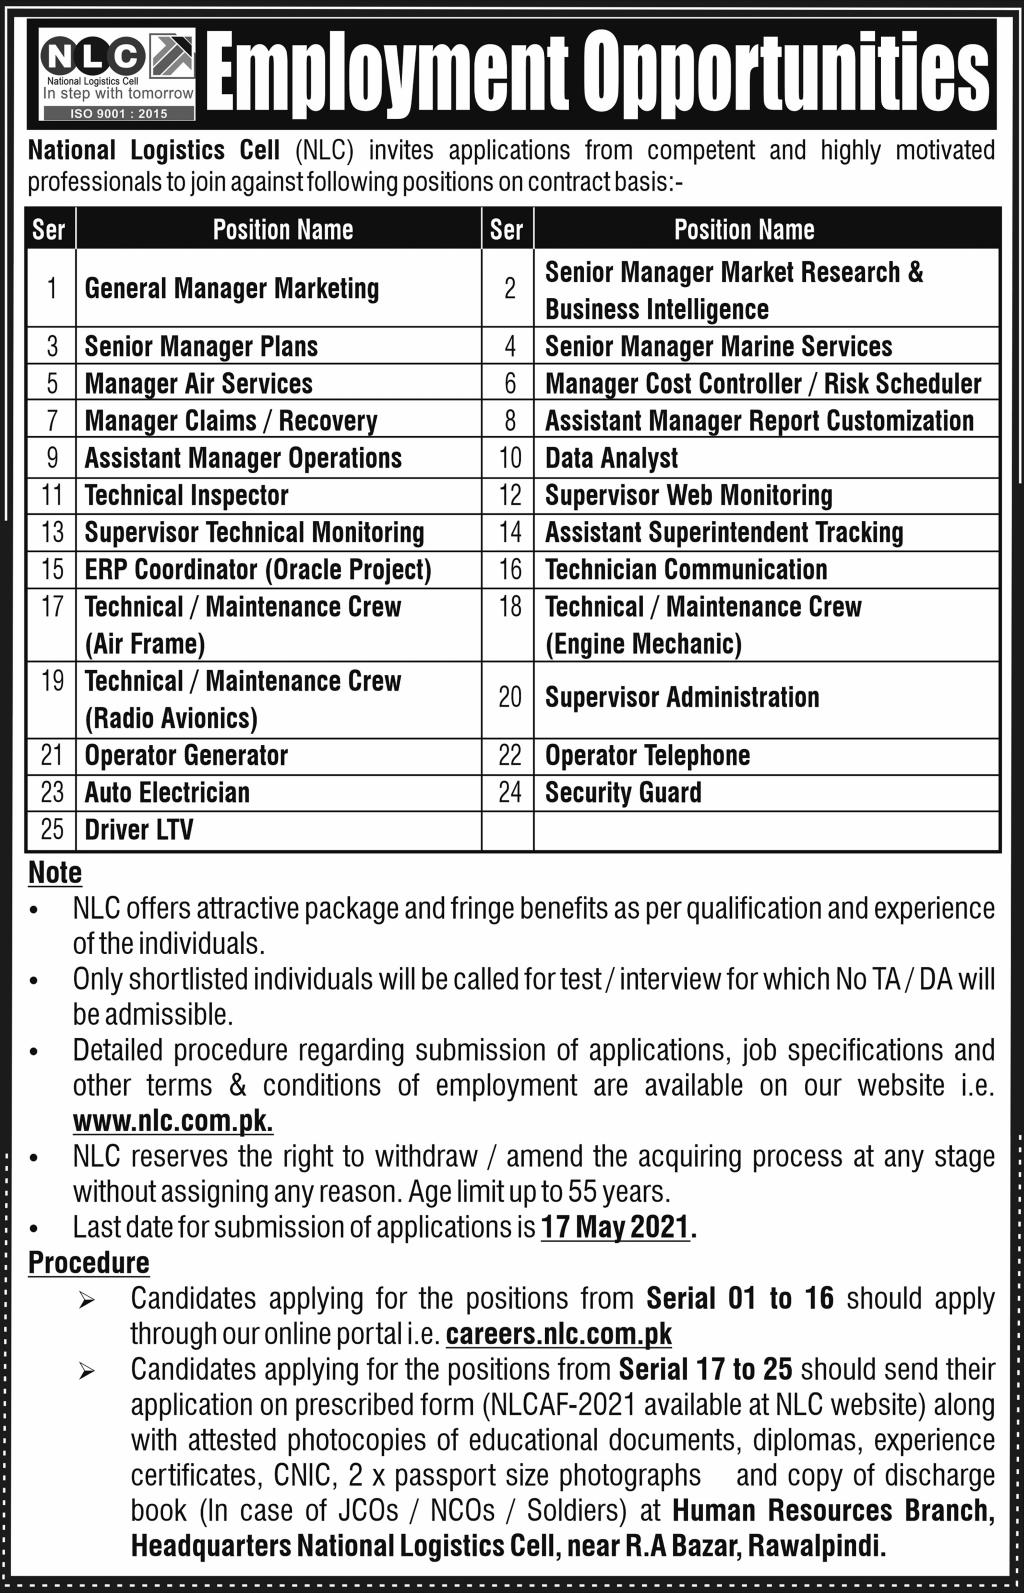 This page is about National Logistics Cell (NLC) Jobs May 2021 Latest Advertisment. National Logistics Cell (NLC) invites applications for the posts announced on a contact / permanent basis from suitable candidates for the following positions such as General Manager Marketing, Senior Manager Plans, Senior Manager Marine Services, Manager Air Services, Manager Cost Controller/Risk Scheduler, Manager Claims/Recovery, Assistant Manager Report Customization, Assistant Manager Operations, Data Analyst, Technical Inspector, Supervisor Web Monitoring, Supervisor Technical Monitoring, Assistant Superintendent Tracking, ERP Coordinator, Technician Communication, Technical/Maintenance Crew (Air Frame), Technical/Maintenance Crew (Engine Mechanic), Technical/Maintenance Crew (Radio Avionics), Supervisor Administration, Operator Generator, Operator Telephone, Auto Electrician, Security Guard, Driver LTV. These vacancies are published in Express Newspaper, one of the best News paper of Pakistan. This advertisement has pulibhsed on 02 May 2021 and Last Date to apply is 17 May 2021.